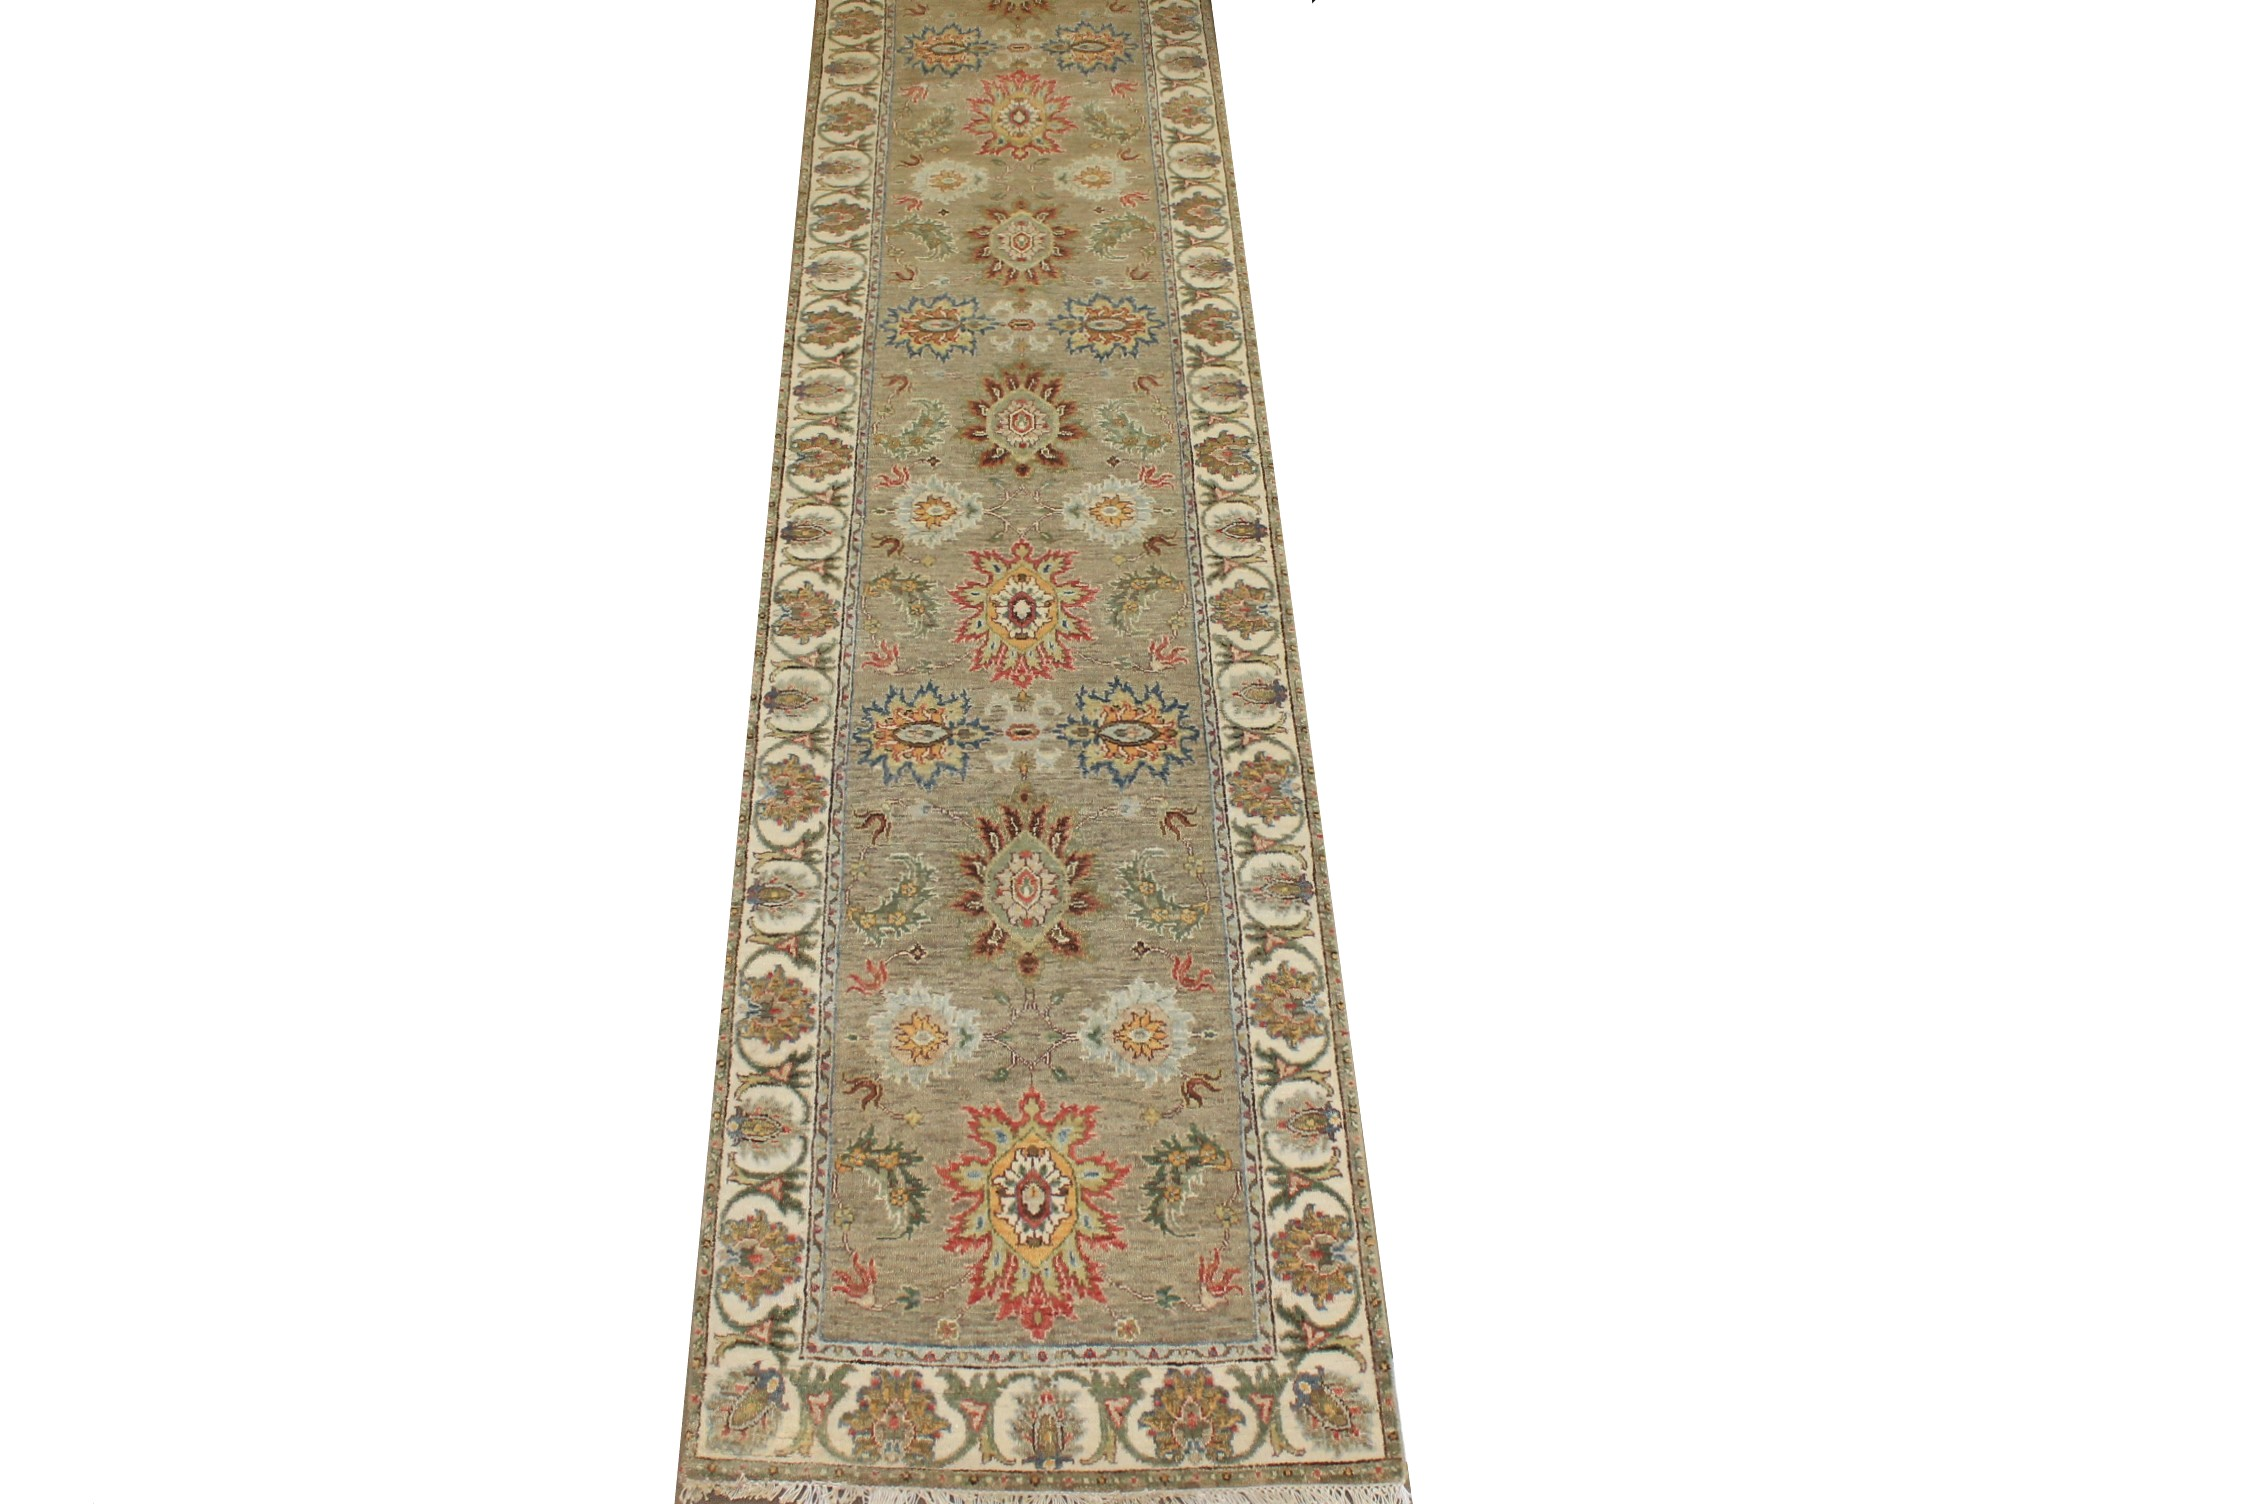 12 ft. Runner Traditional Hand Knotted Wool Area Rug - MR025244